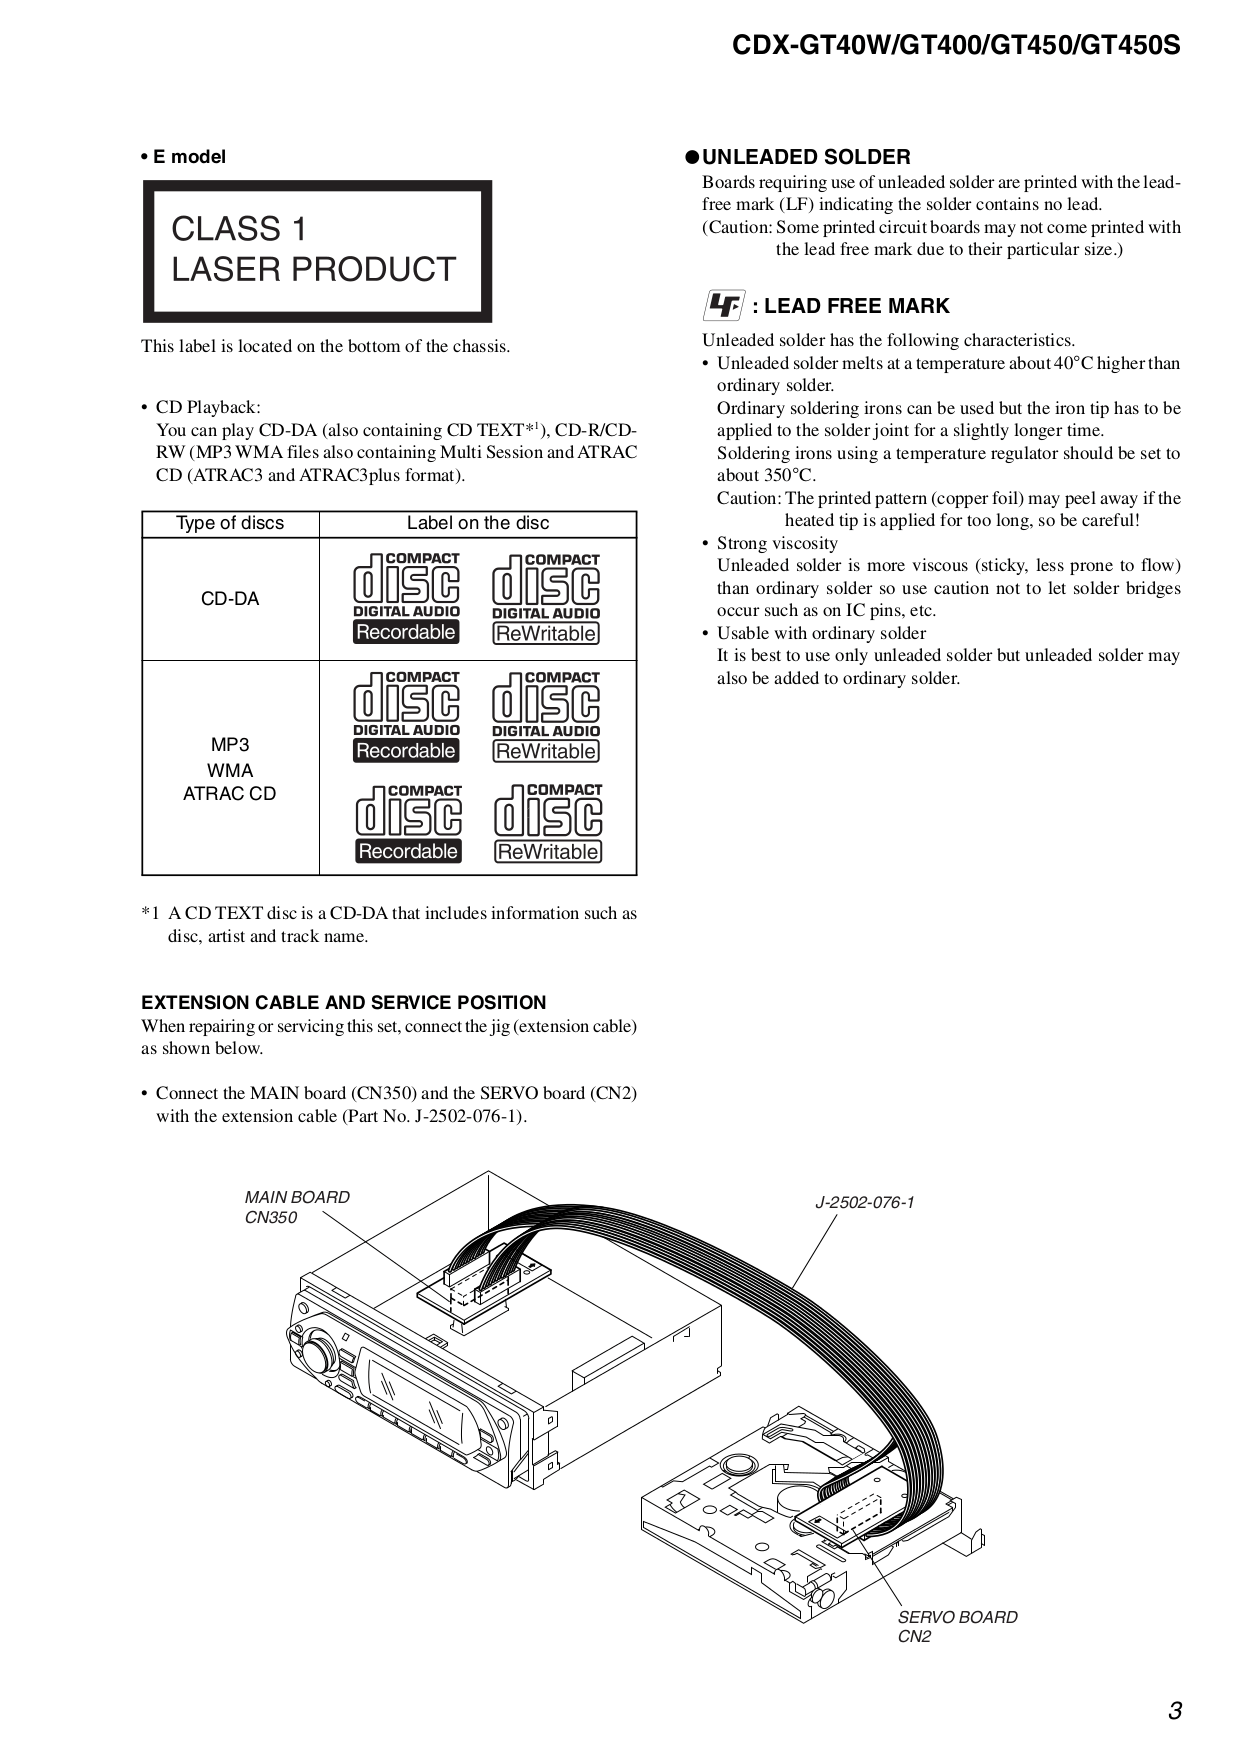 Sony Cdx-Gt565Up Wiring Diagram from i2.wp.com